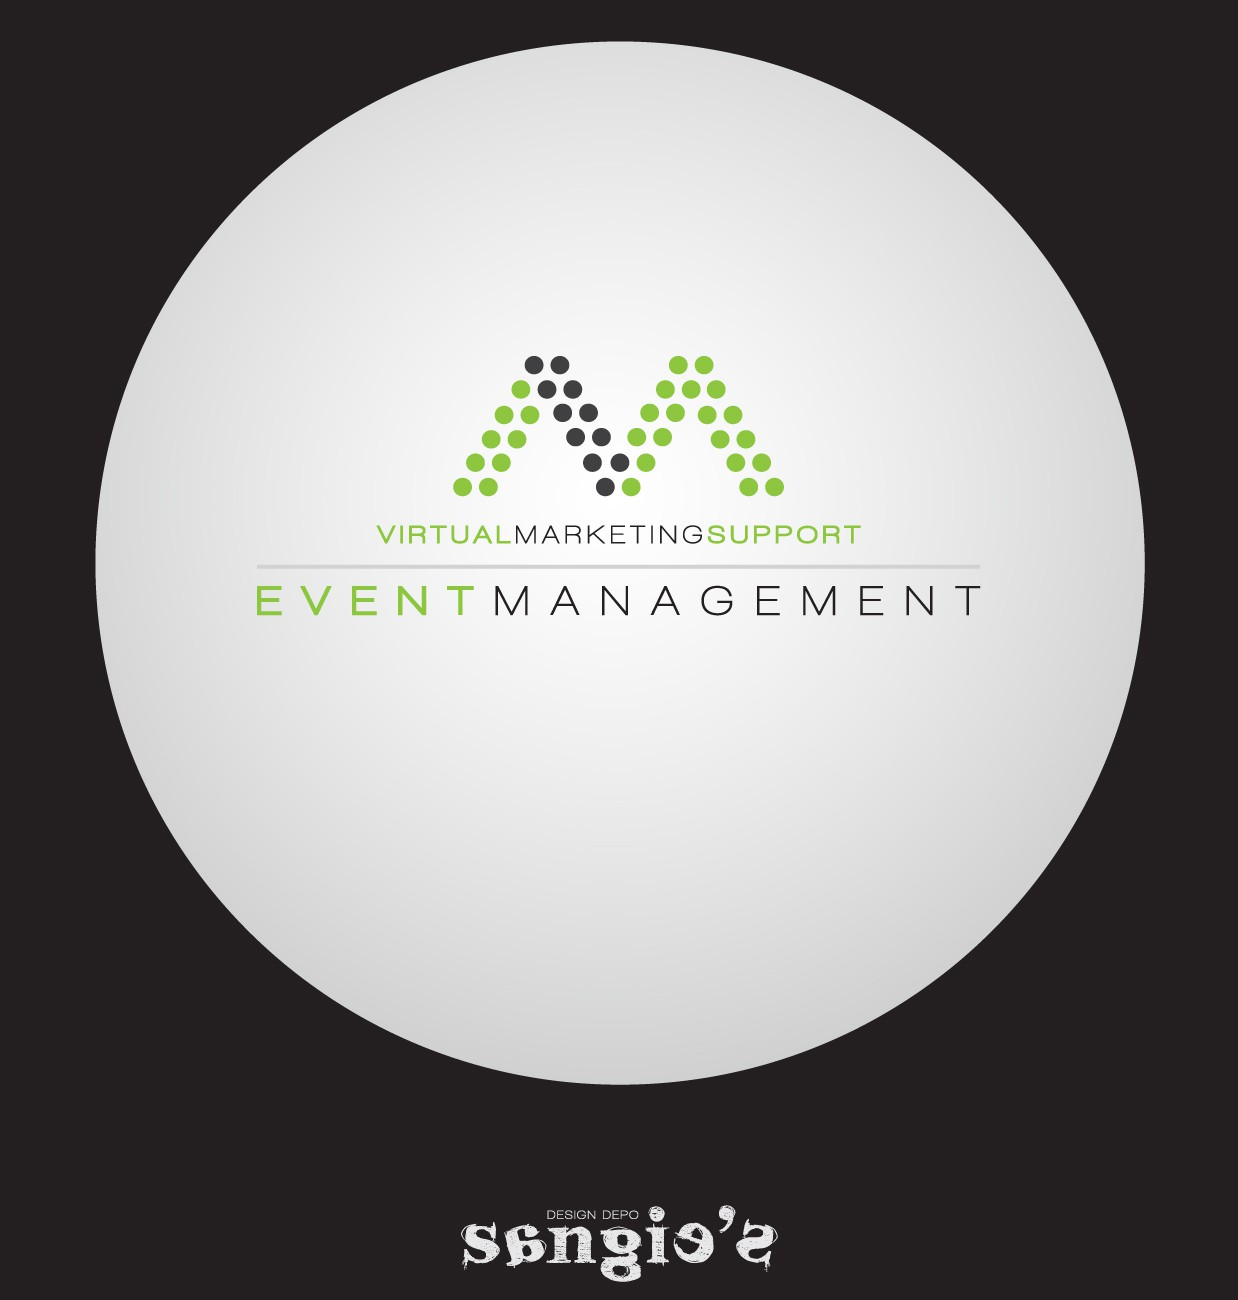 Create a new logo for an event management company